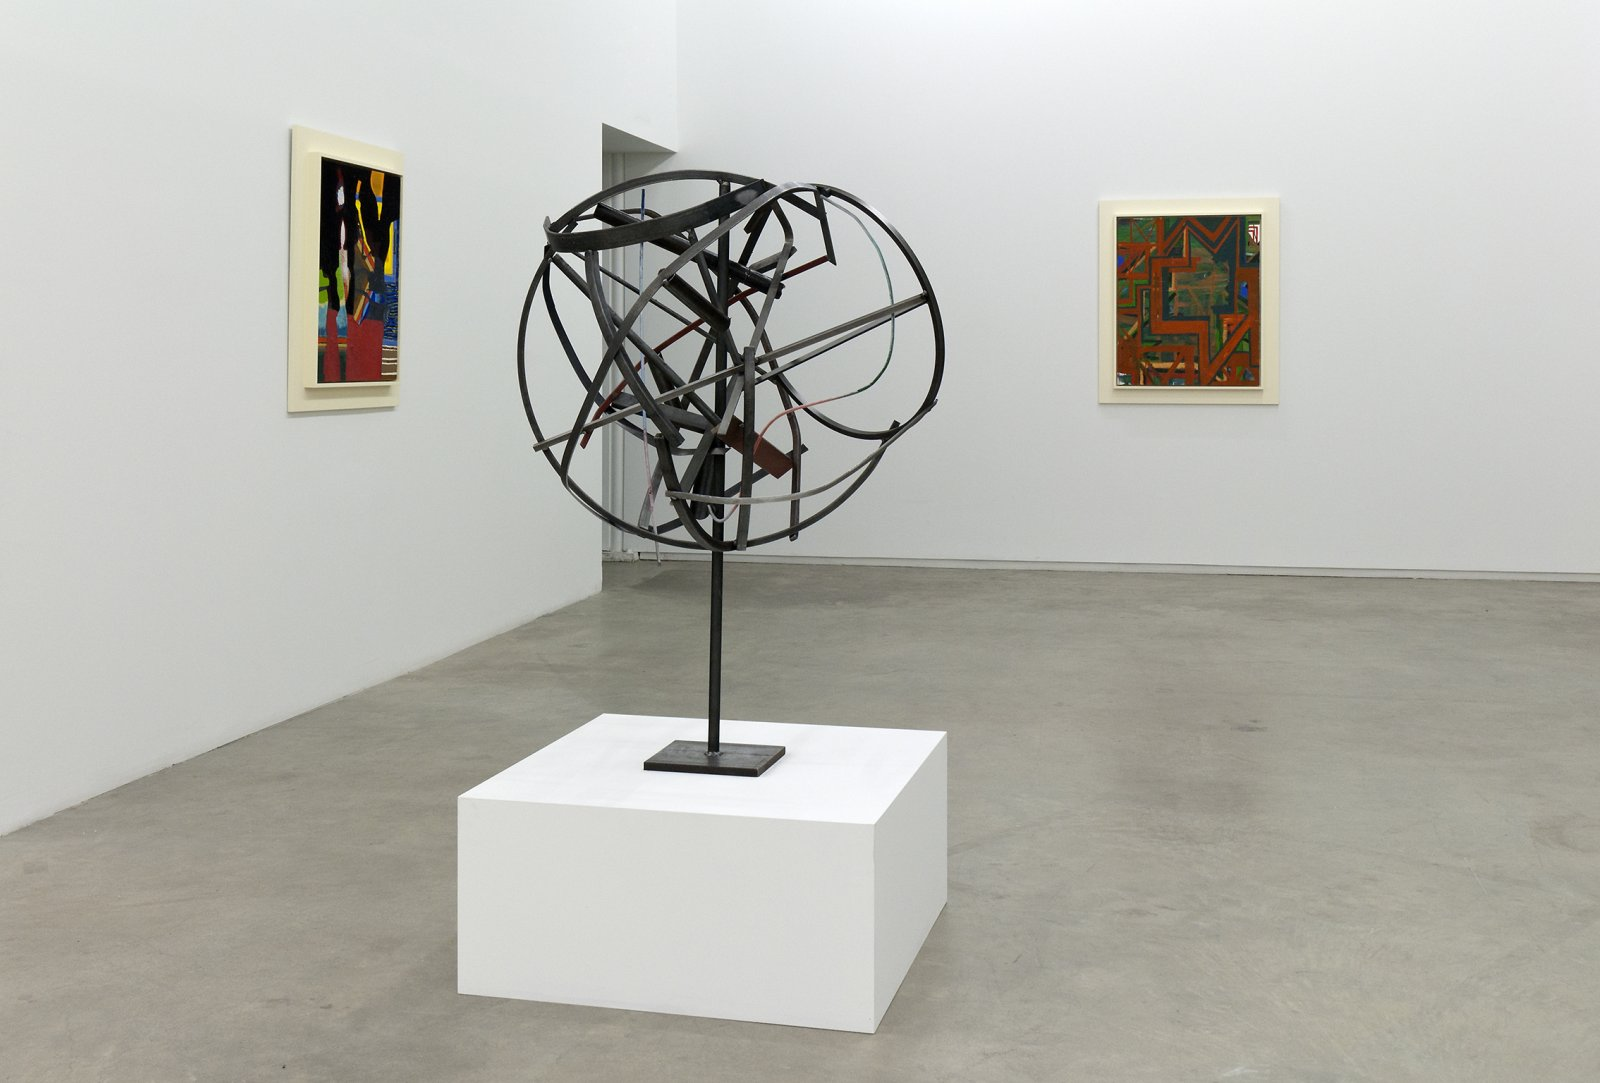 Damian Moppett, installation view, The Sculptor's Studio is a Painting, Catriona Jeffries, 2010 by Damian Moppett